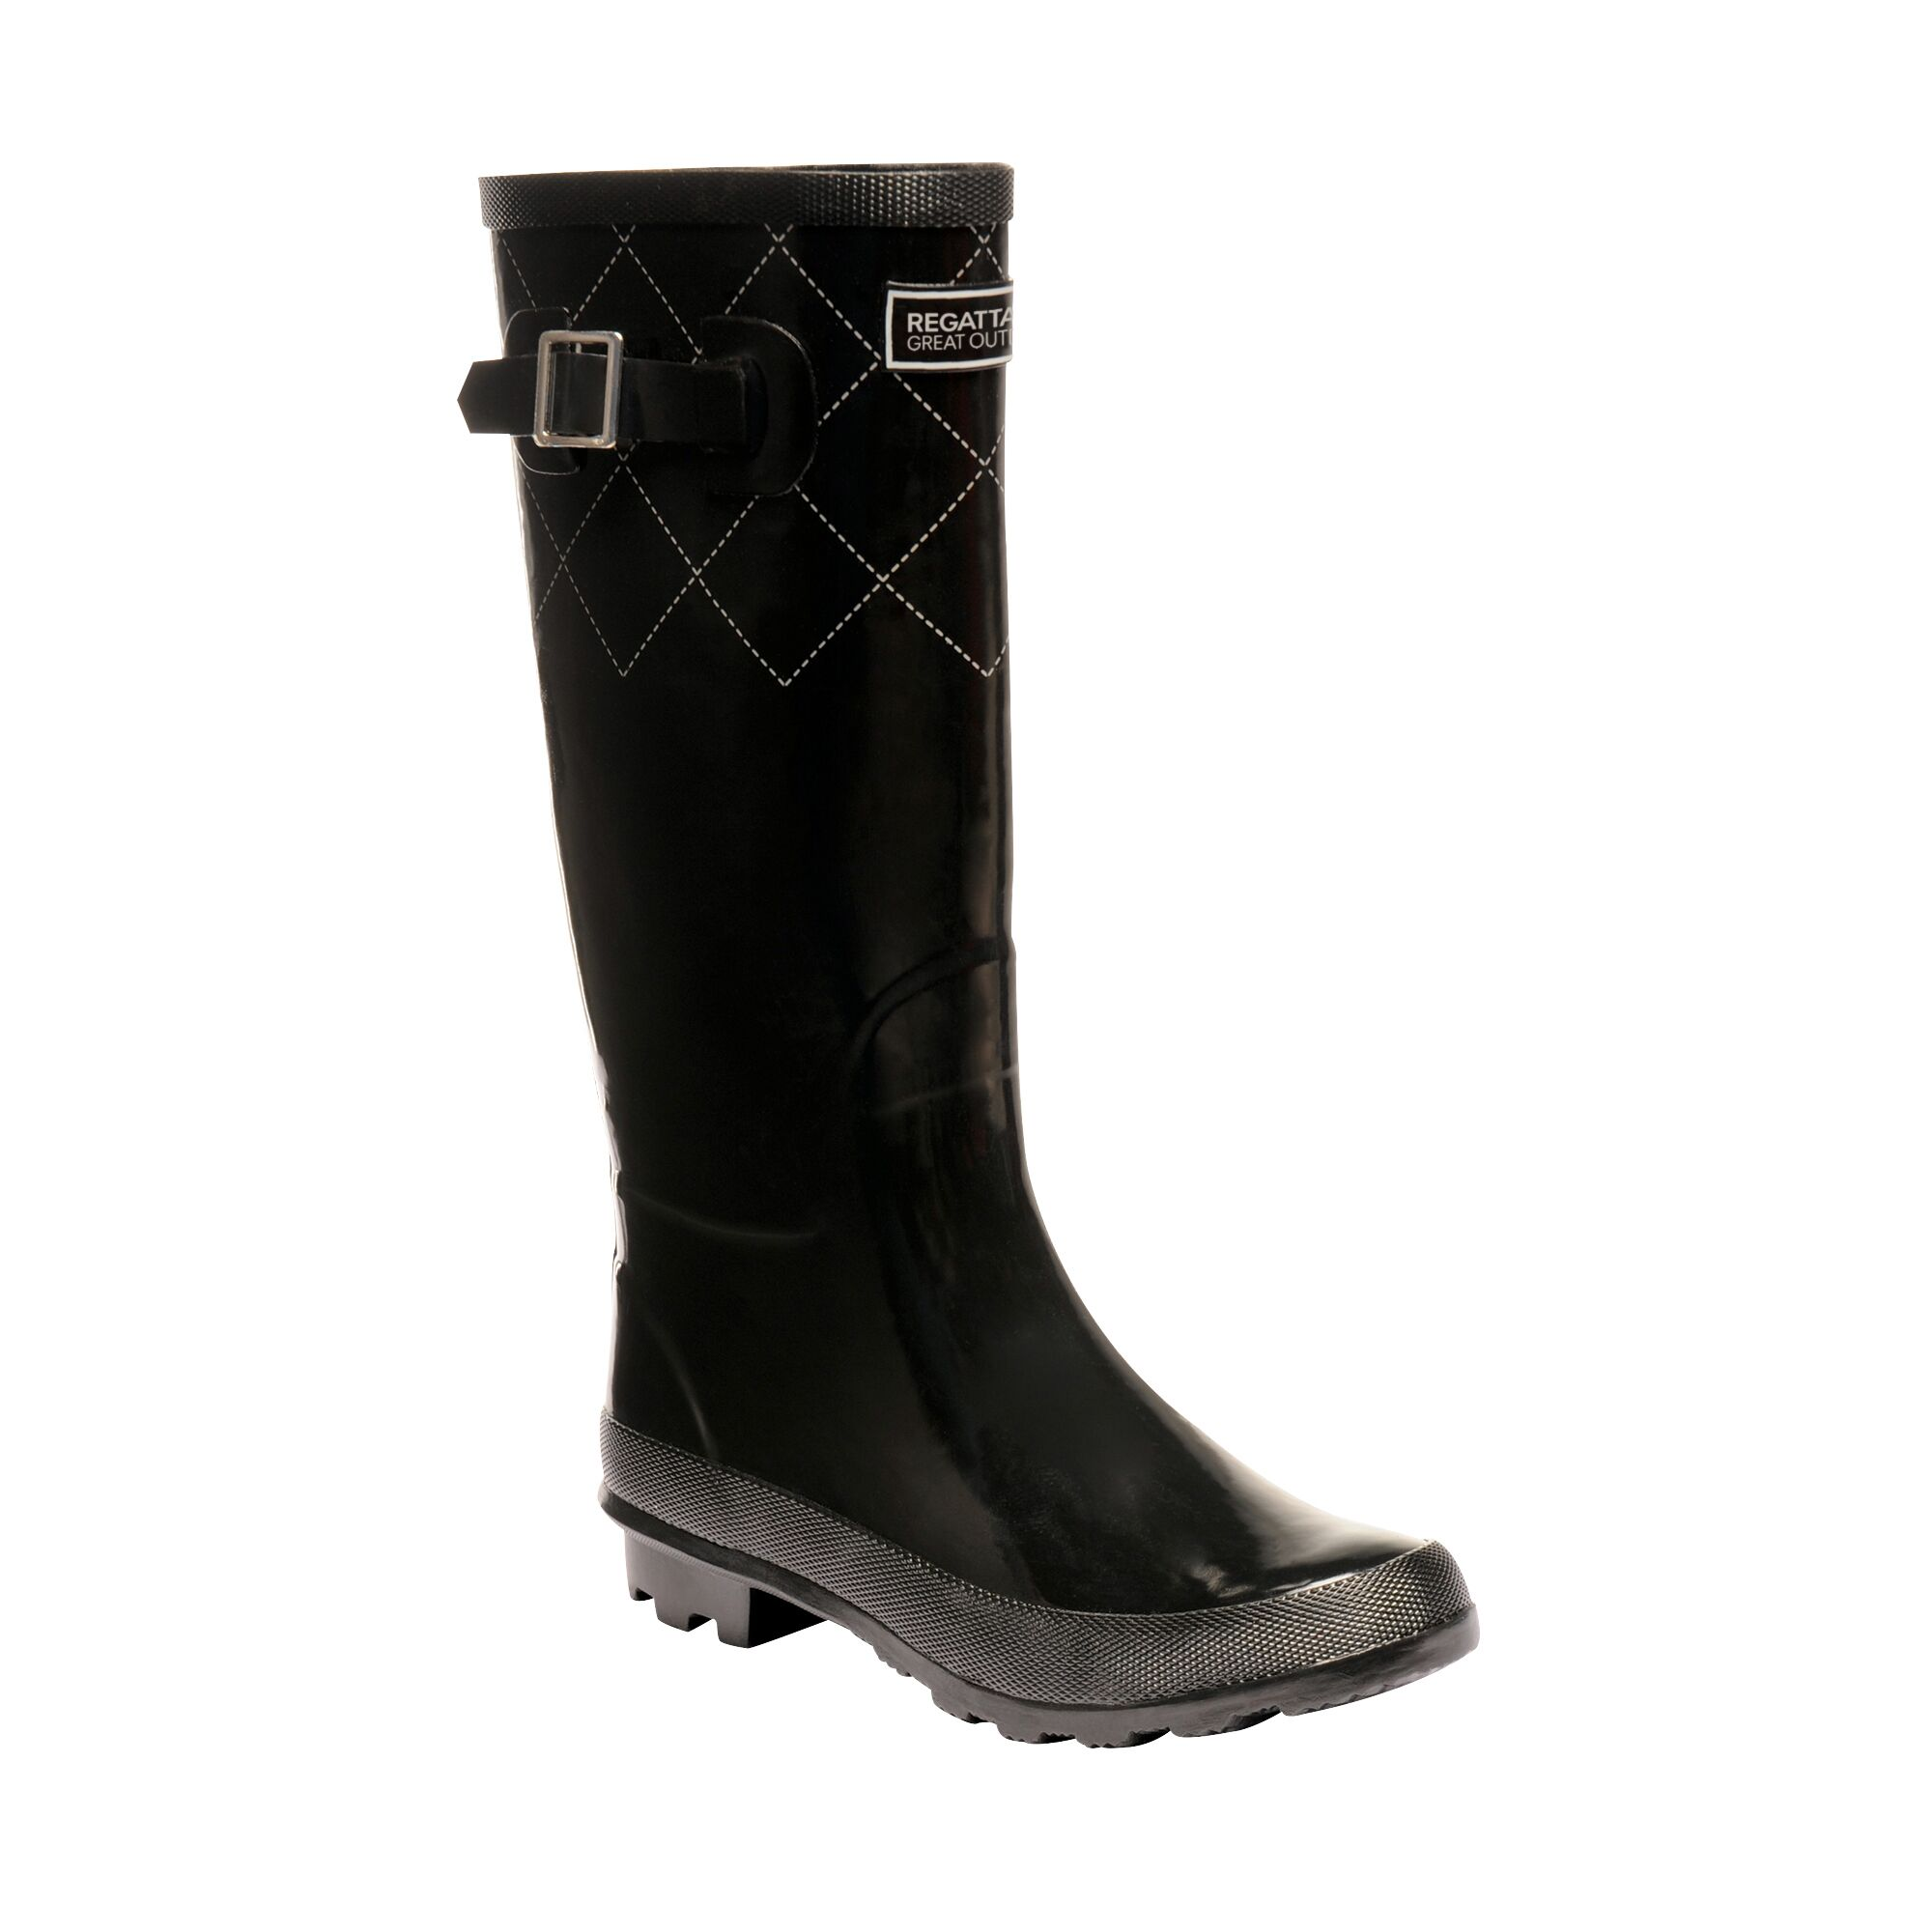 Women's black wellington boots with detailing.